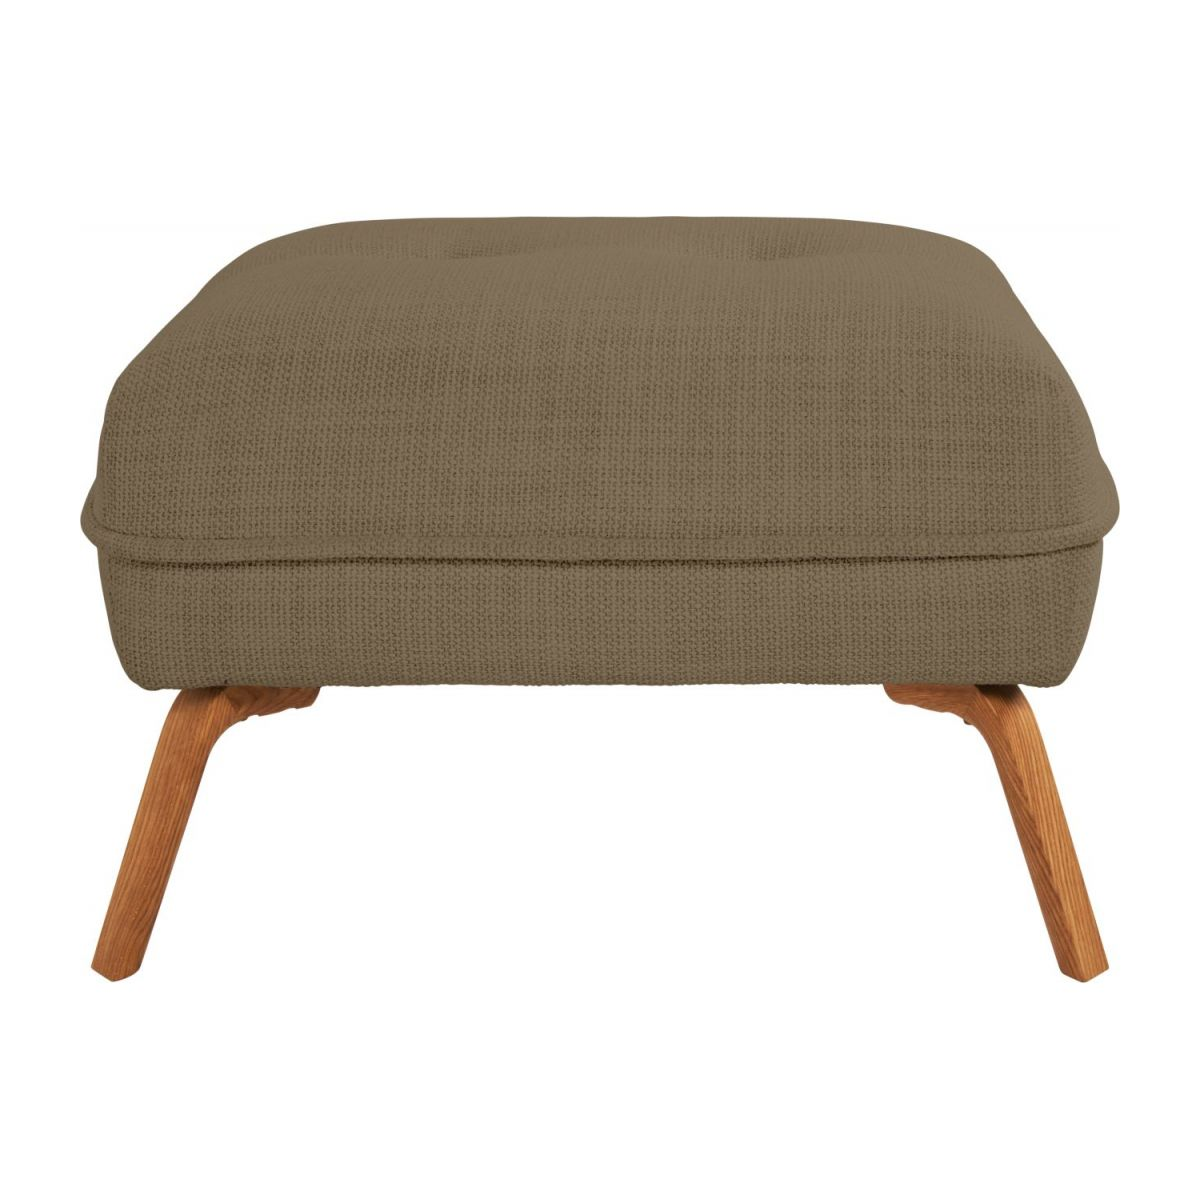 Footstool in Fasoli fabric, jatoba brown and oak legs n°2